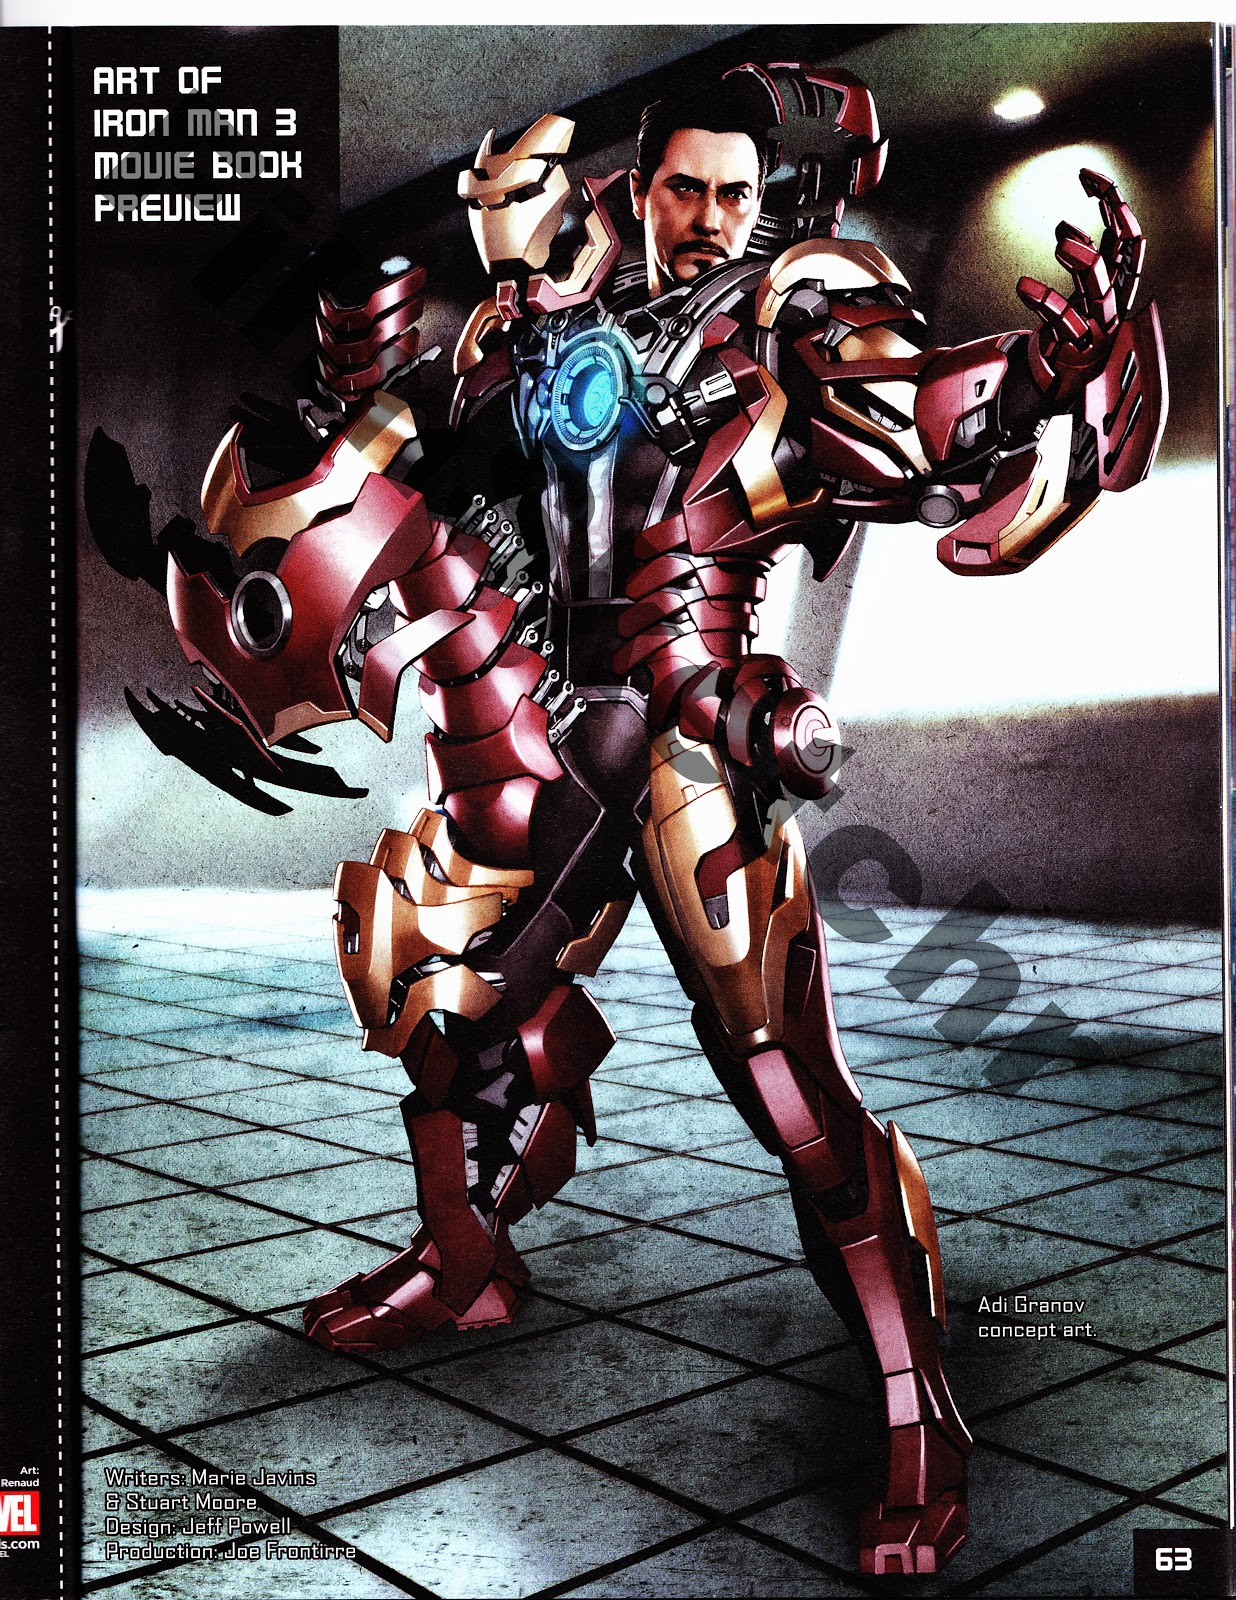 Exclusive: 16 Pages of ART OF IRON MAN 3 Book Preview ...